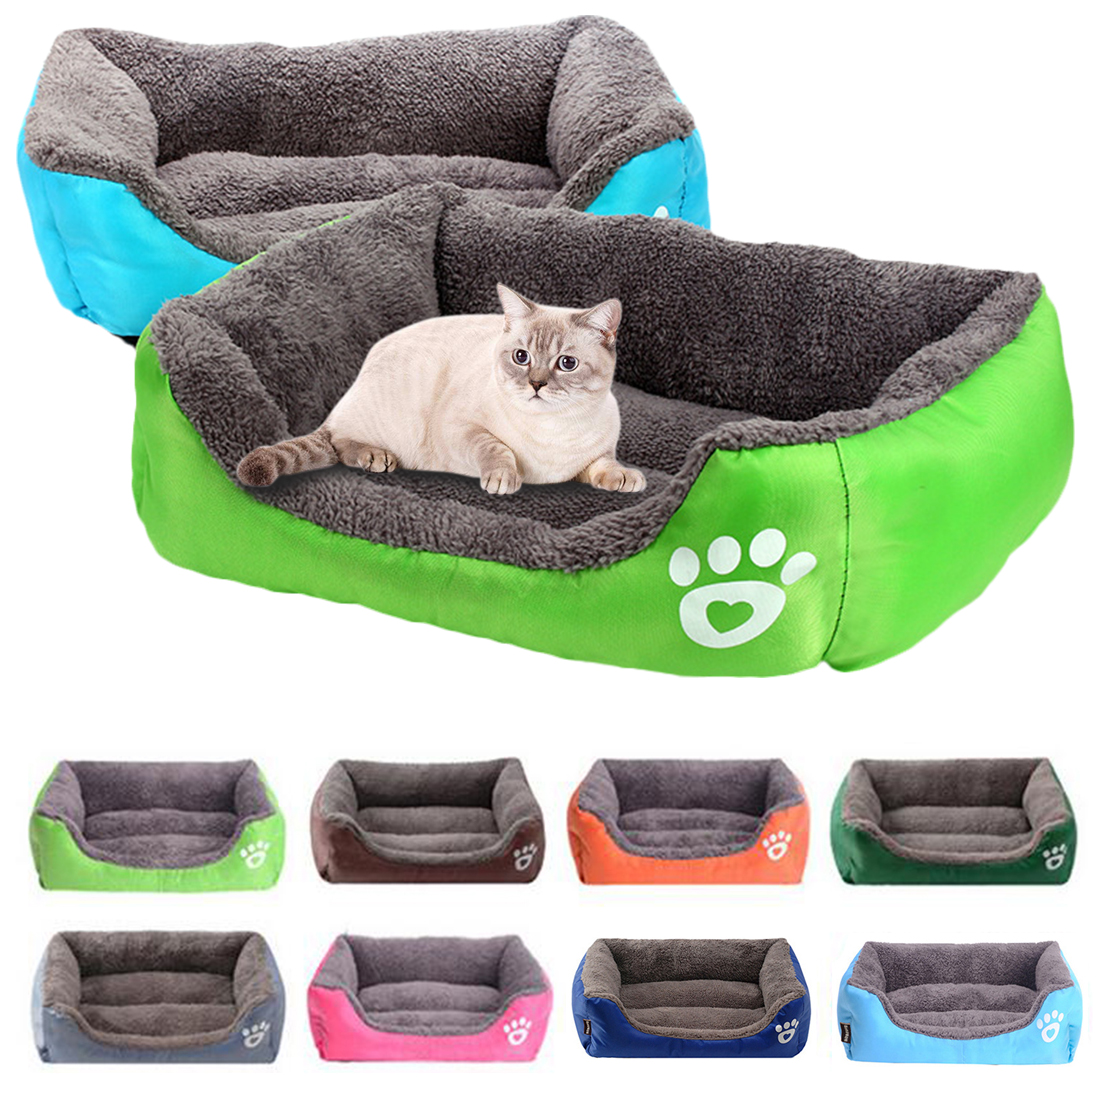 Winter Warming Dog House Paw Pet Sofa Dog Beds Cushion Fleece Warm Cat Nest Sleeping Bed Pet House for Puppy Fall in Houses Kennels Pens from Home Garden